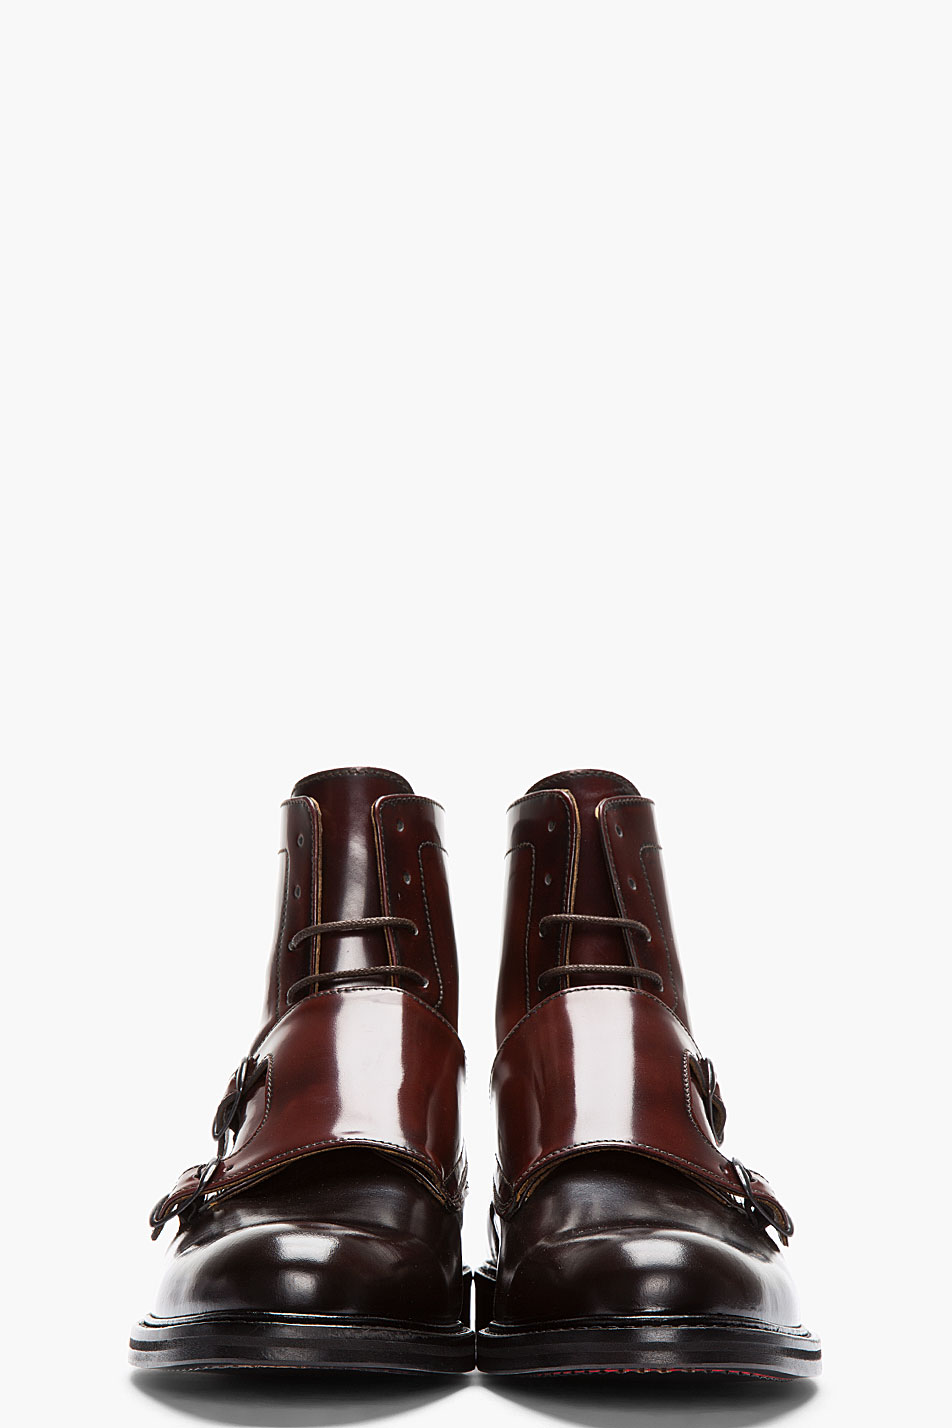 Carven Mahogany Two Tone Monk Strap Boots In Brown For Men